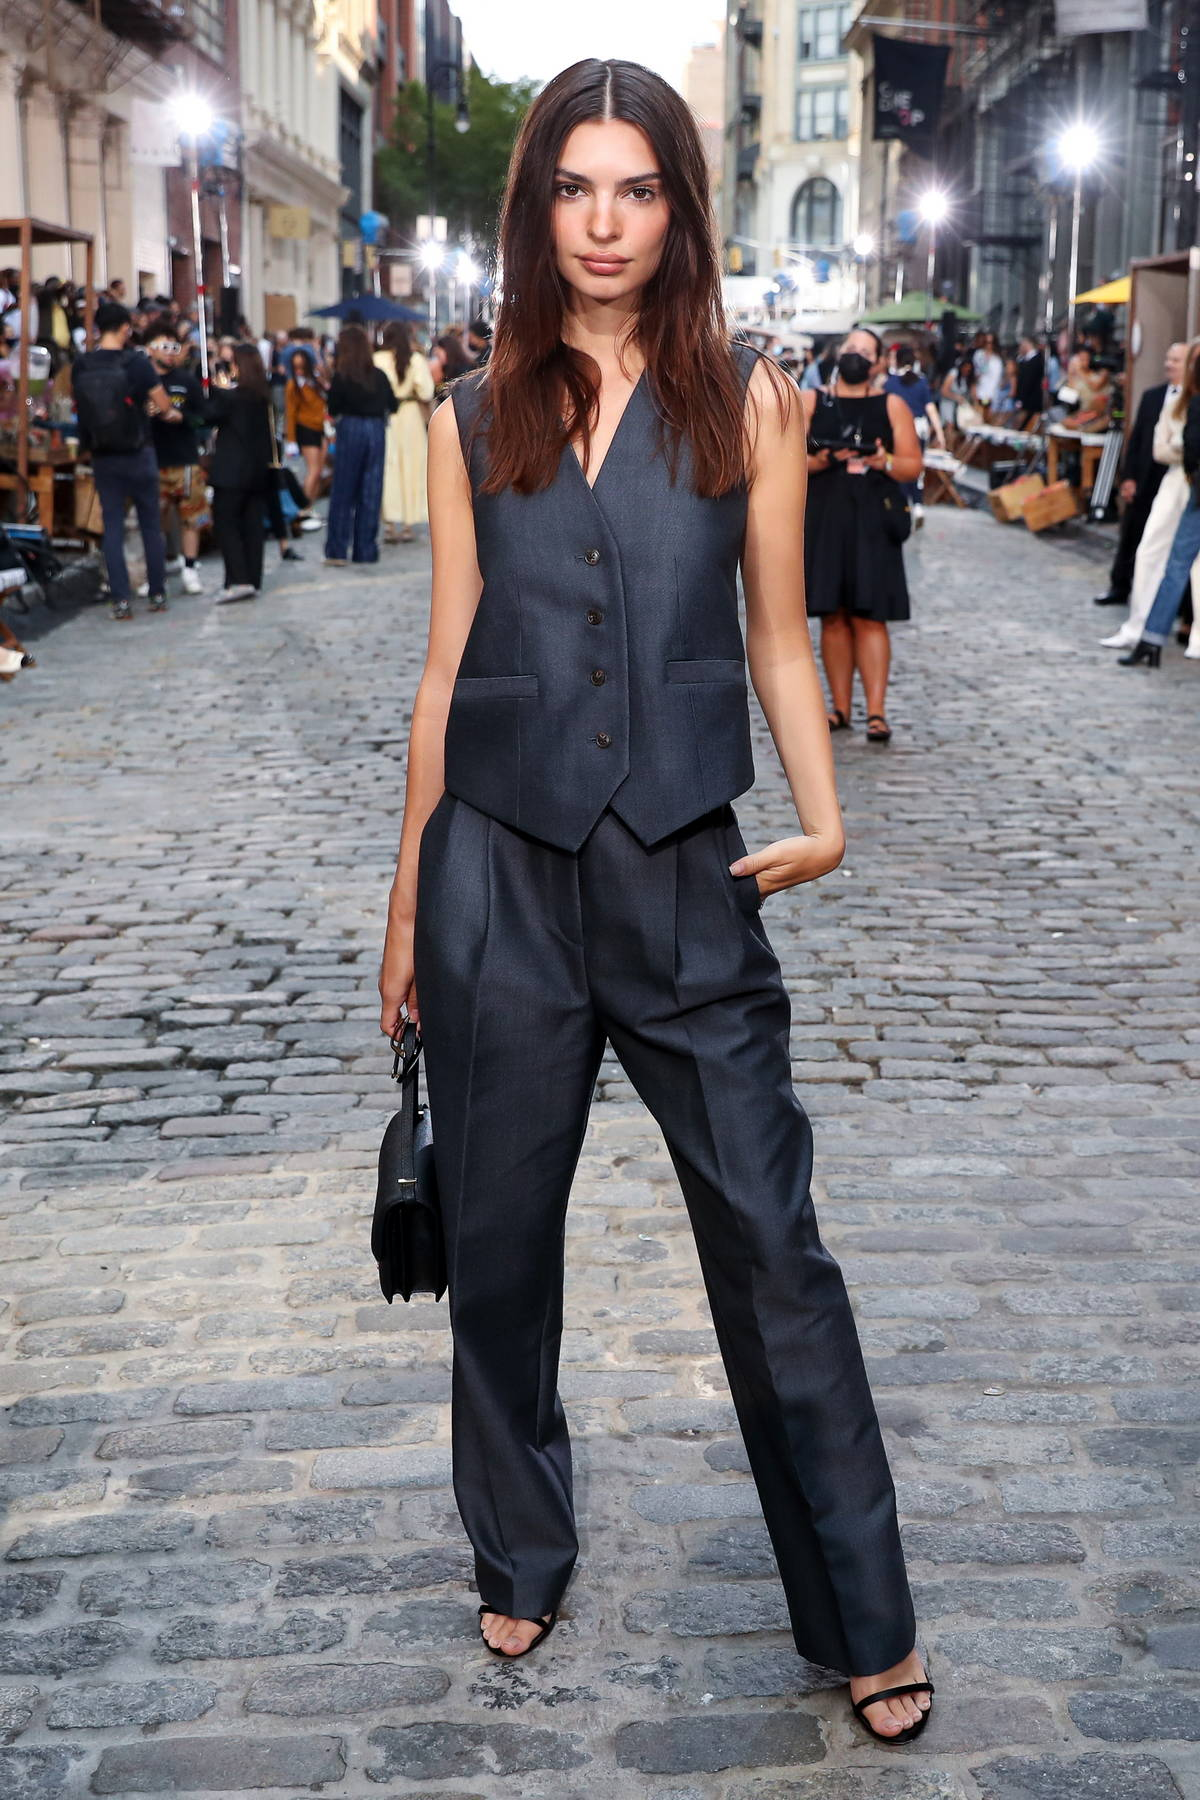 Emily Ratajkowski looks classy at the Tory Burch fashion show during New York Fashion Week in New York City